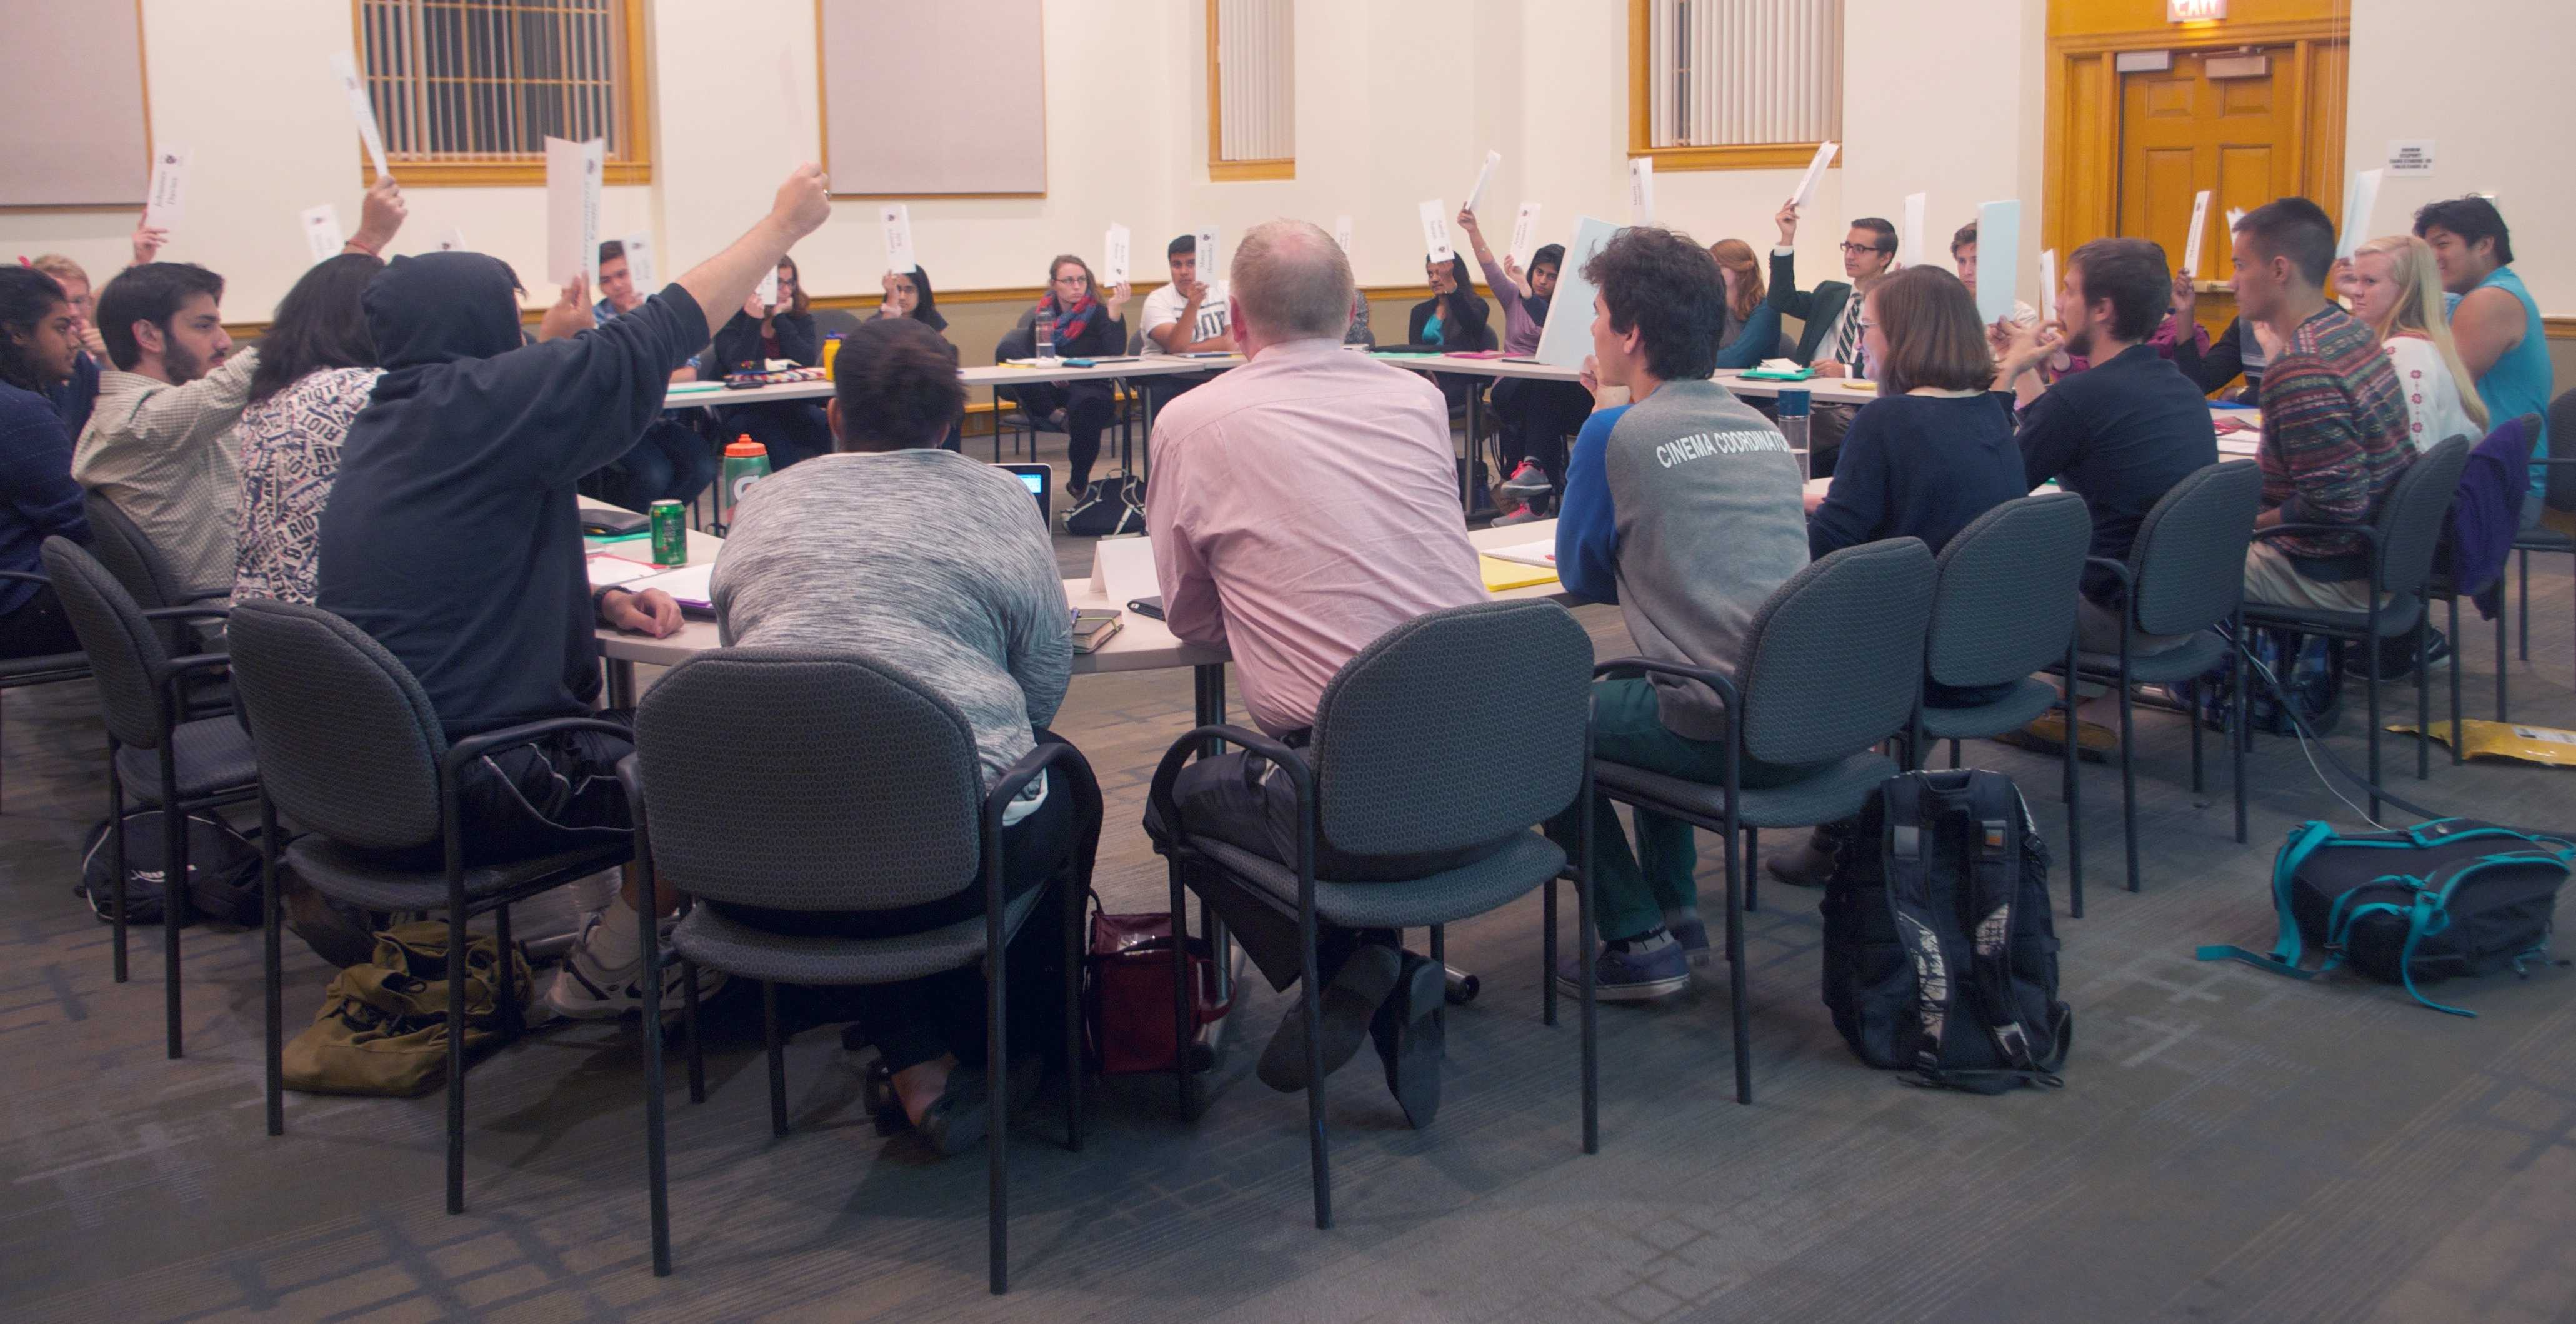 Pictured: MCSG Legislative Body voting during their weekly Tuesday meetings in Weyerhaeuser boardroom. Meetings are open to the public. Photo by Maddie Jaffe '17.